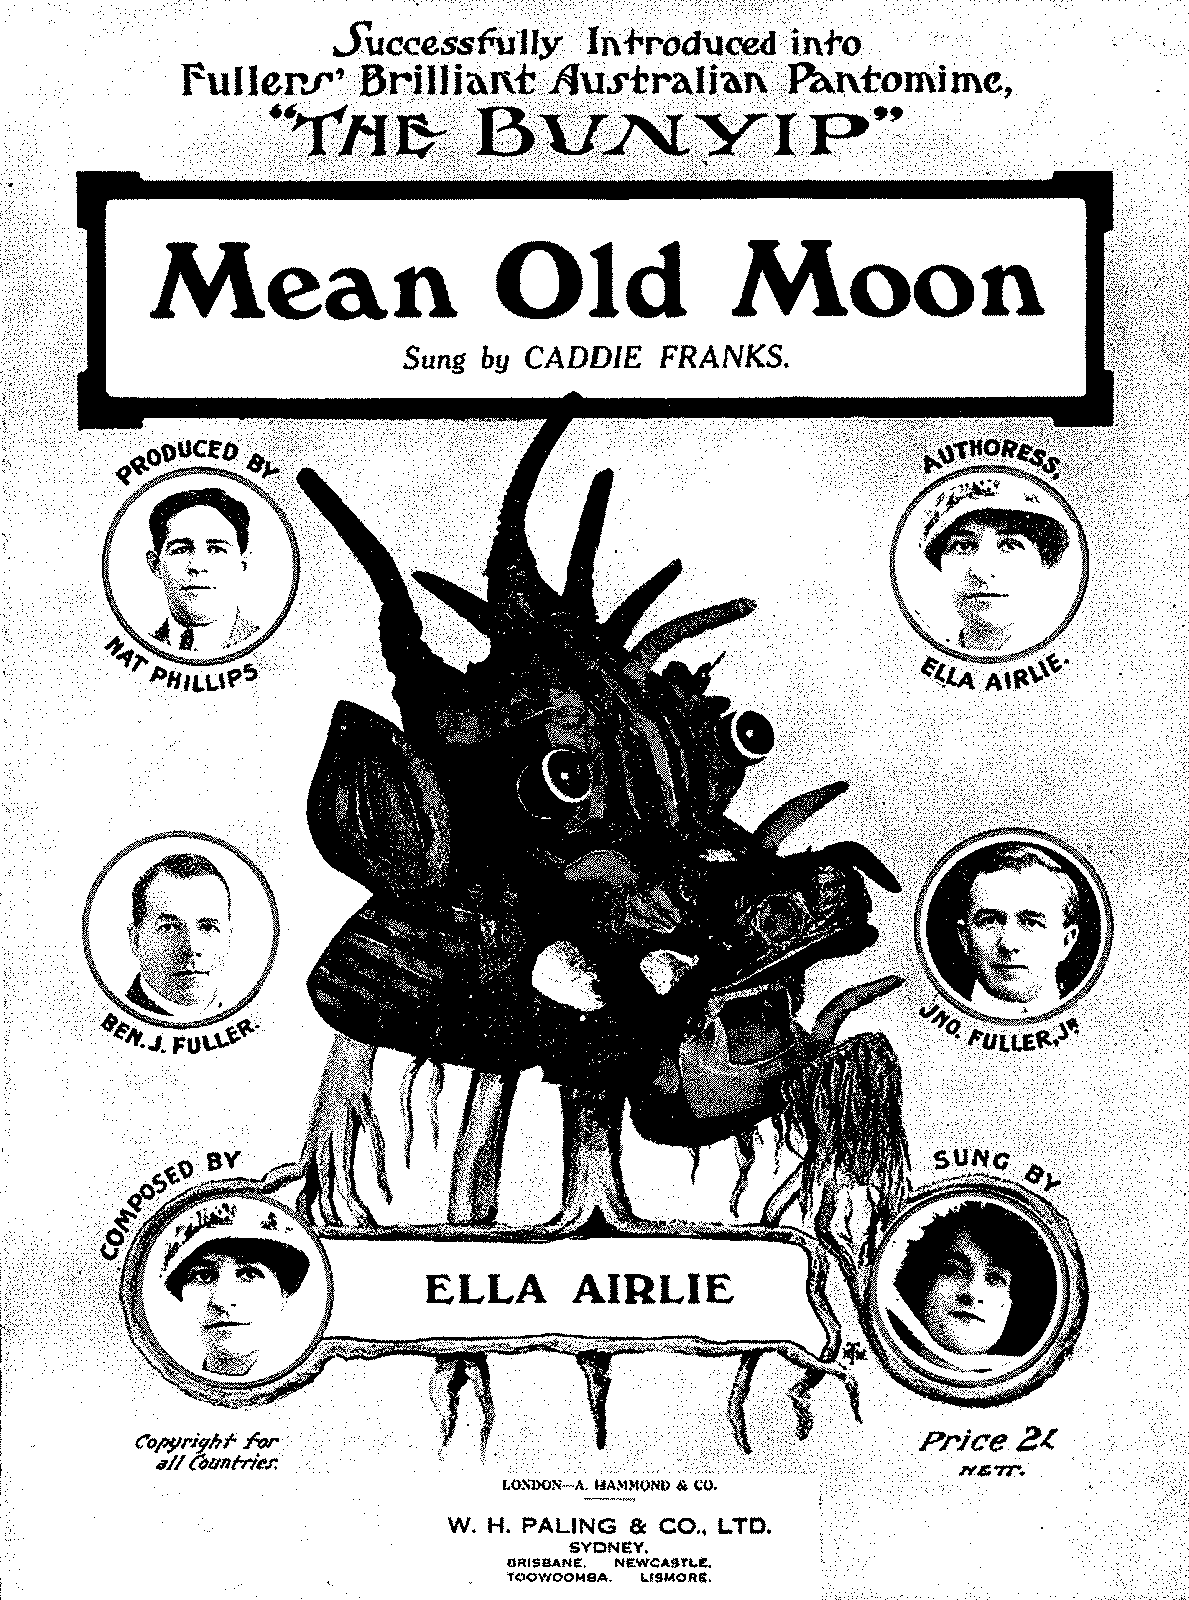 PMLP354683-Airlie, Ella - Mean old moon - Song - NLA.pdf